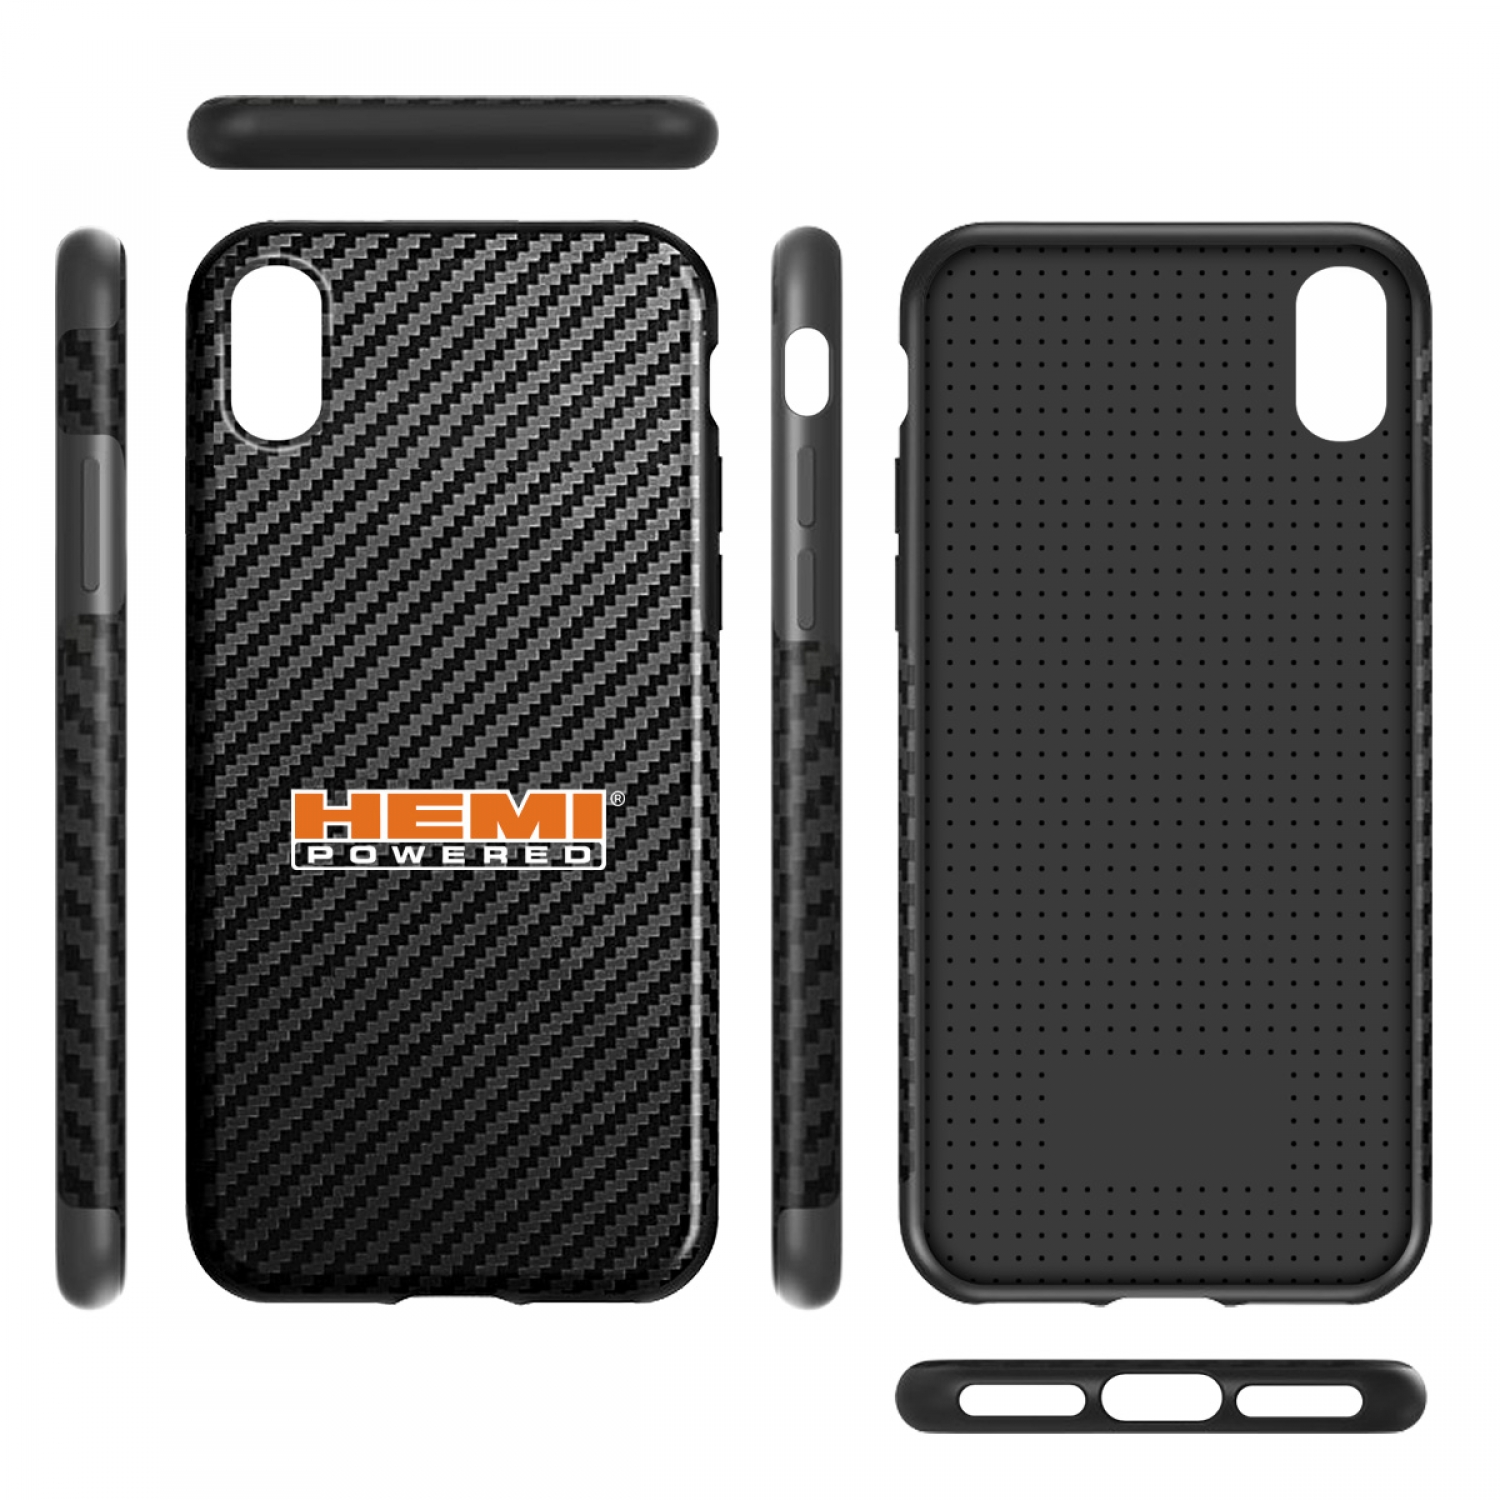 HEMI Powered iPhone X Black Carbon Fiber Texture Leather TPU Shockproof Cell Phone Case